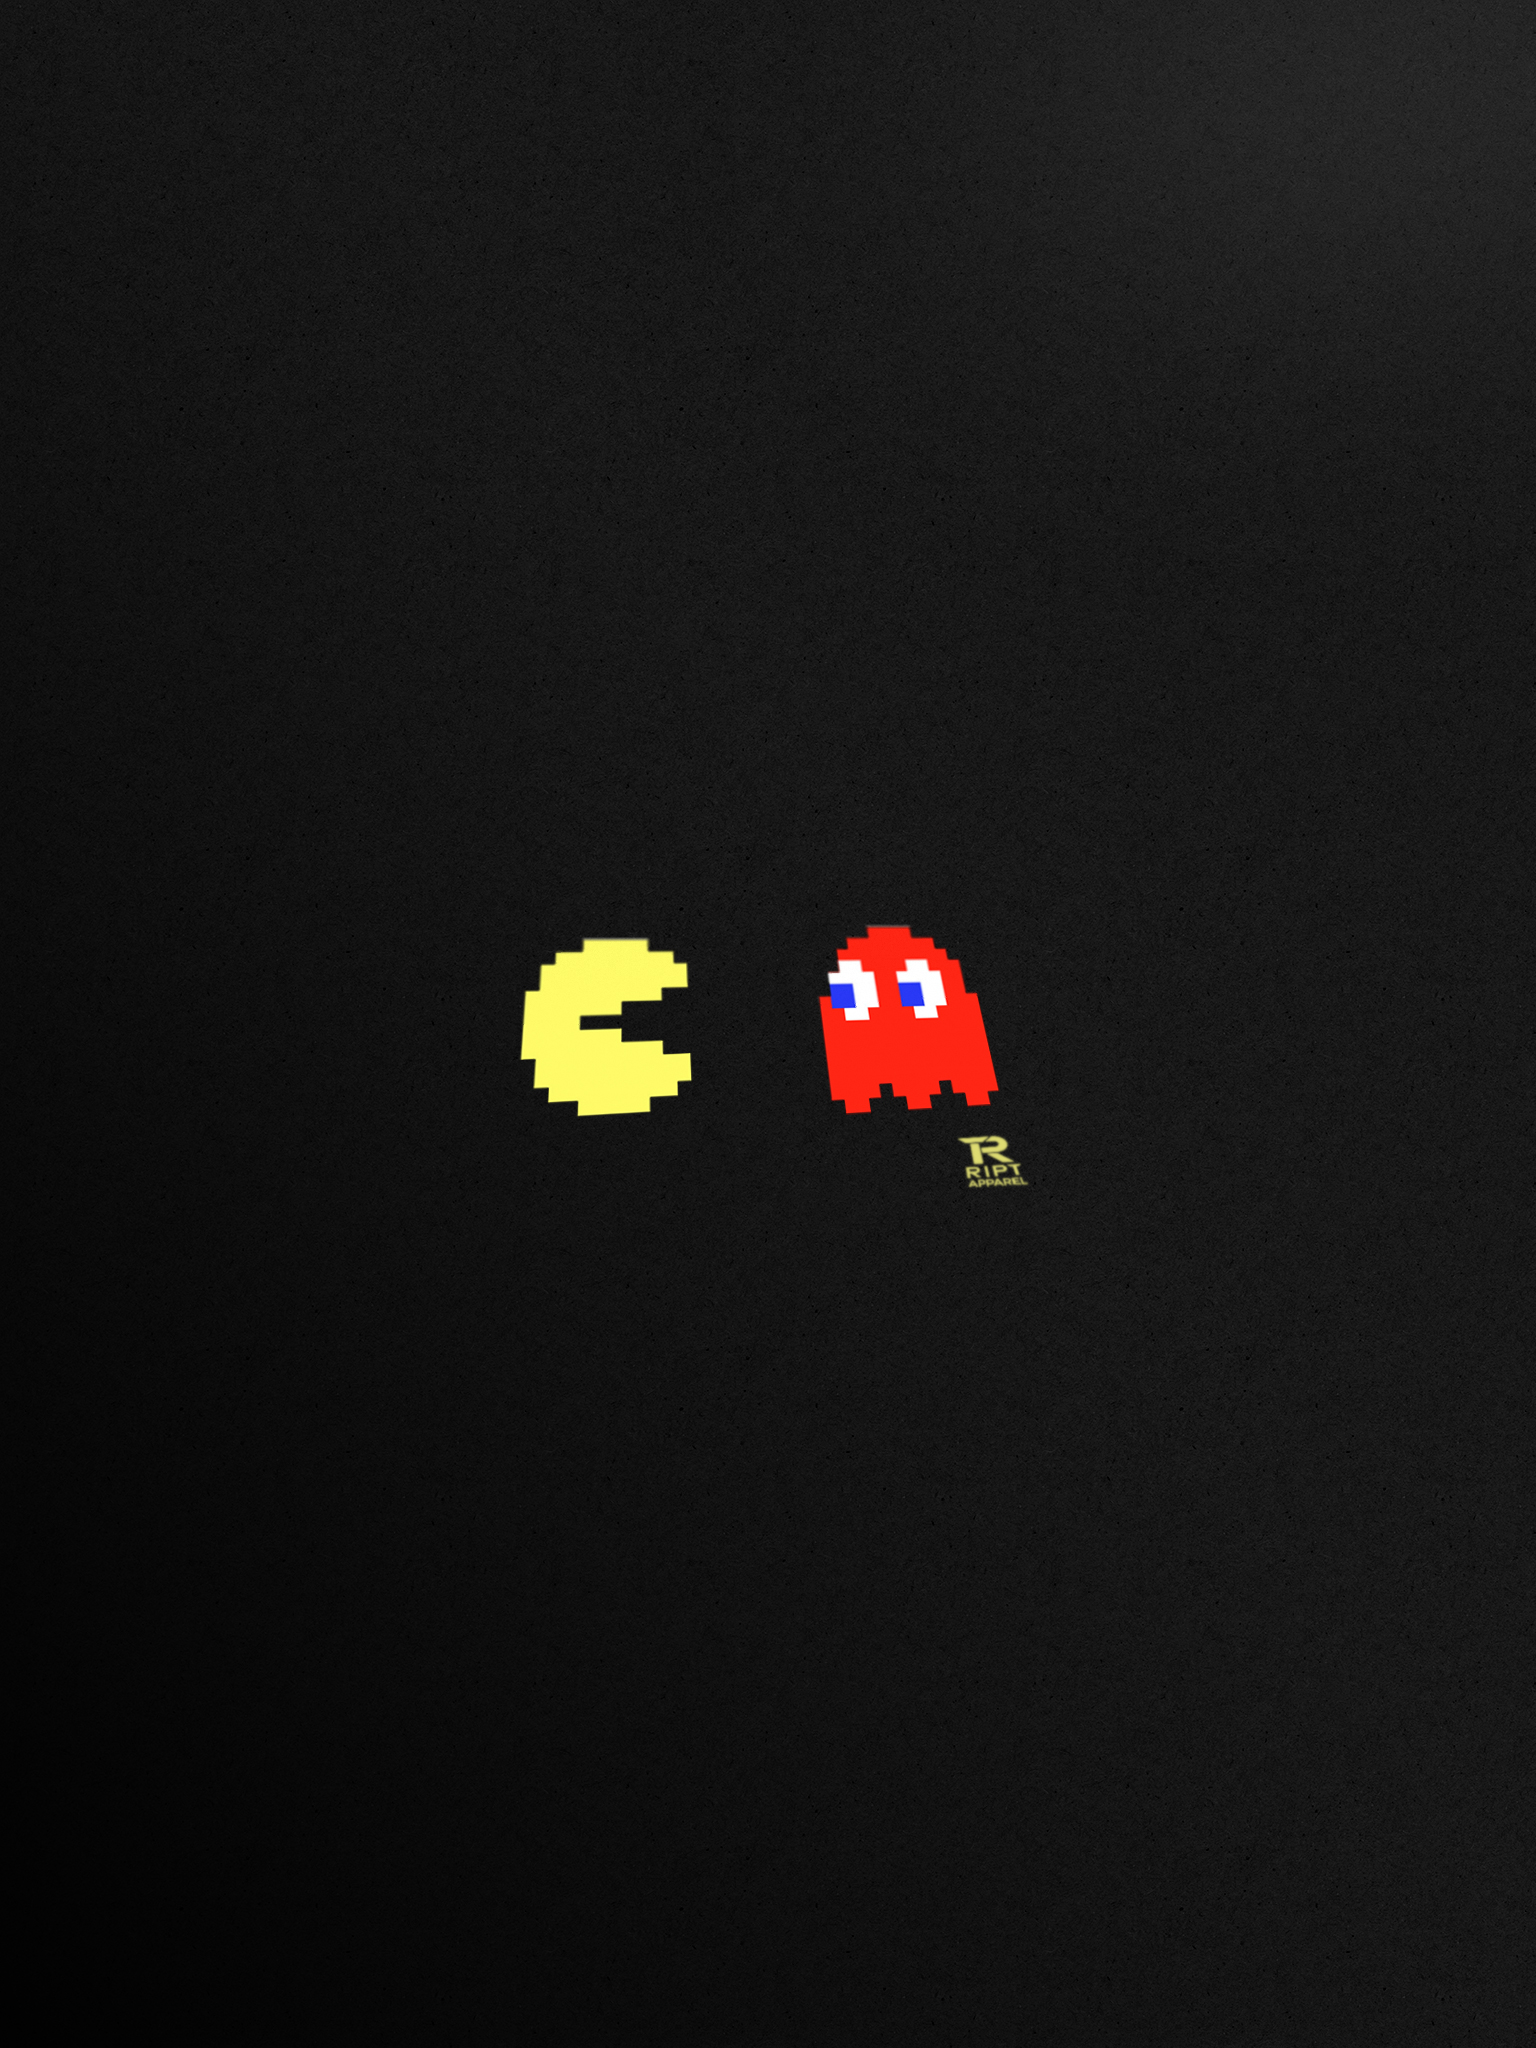 Iphone 5 wallpaper tumblr retina - Ript T Shirts Pac Man Poster Wallpaper Iphone 5 And Ipad